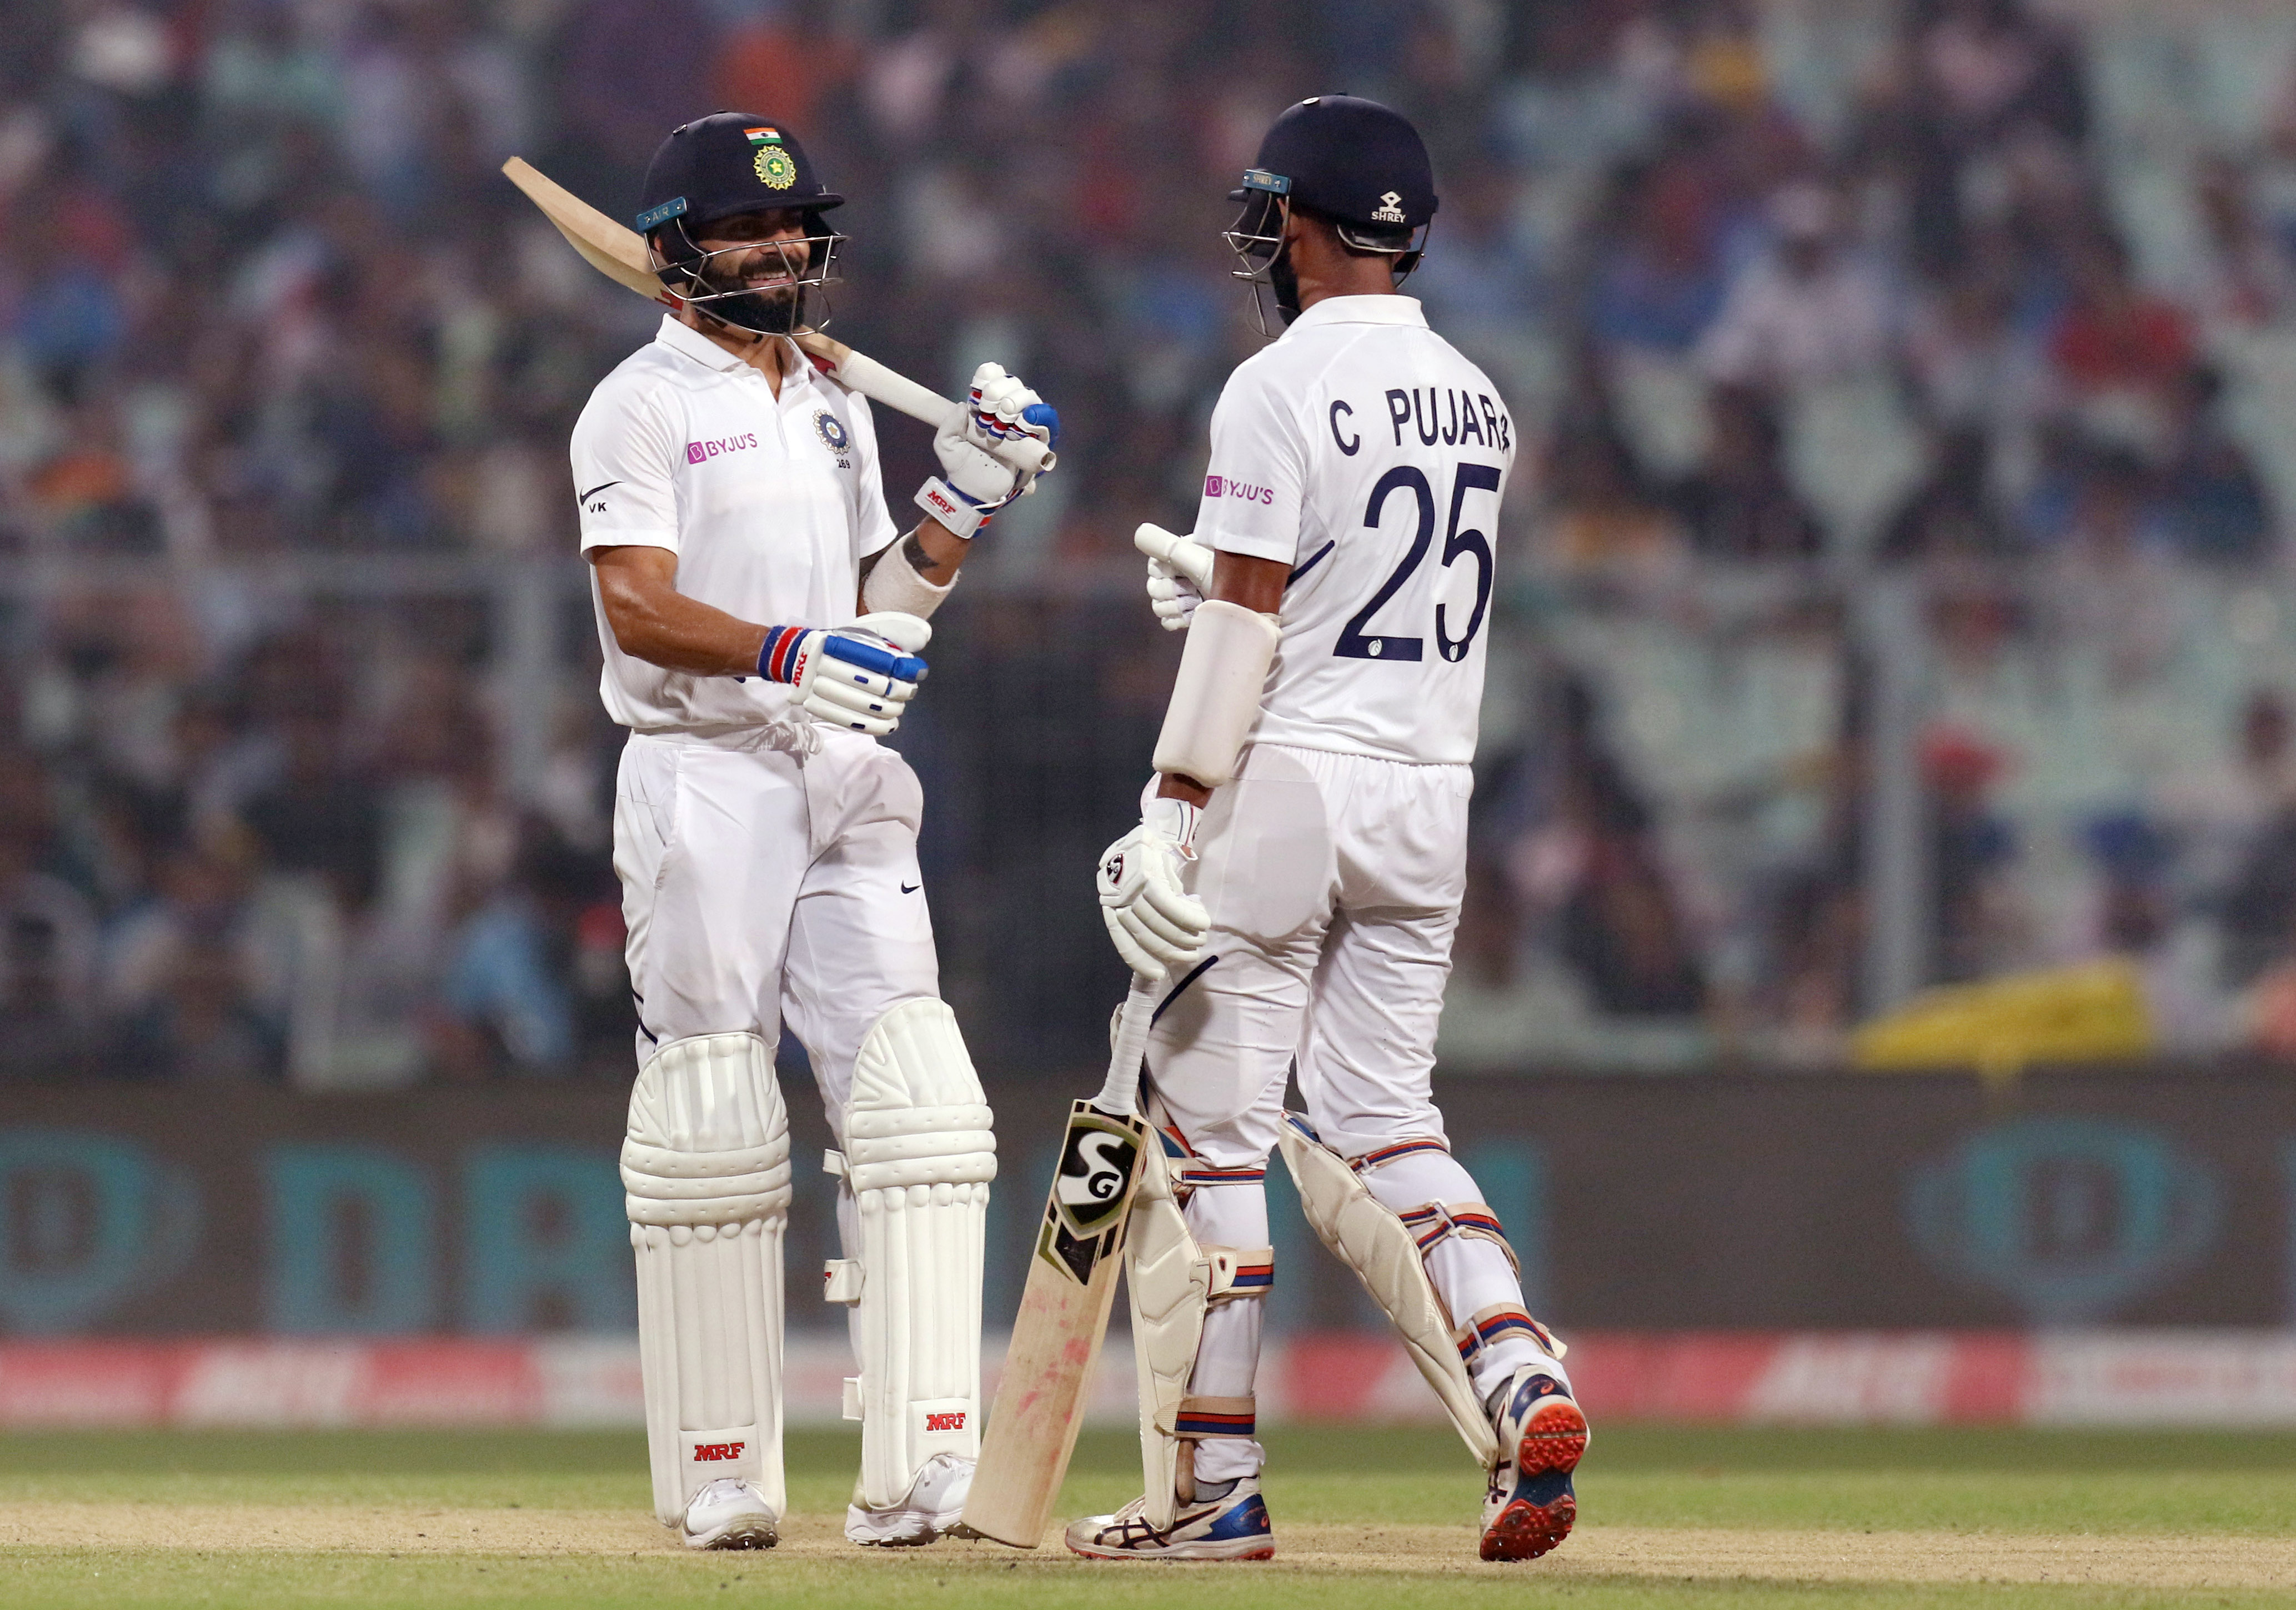 Pujara could have rotated strike better: Steyn